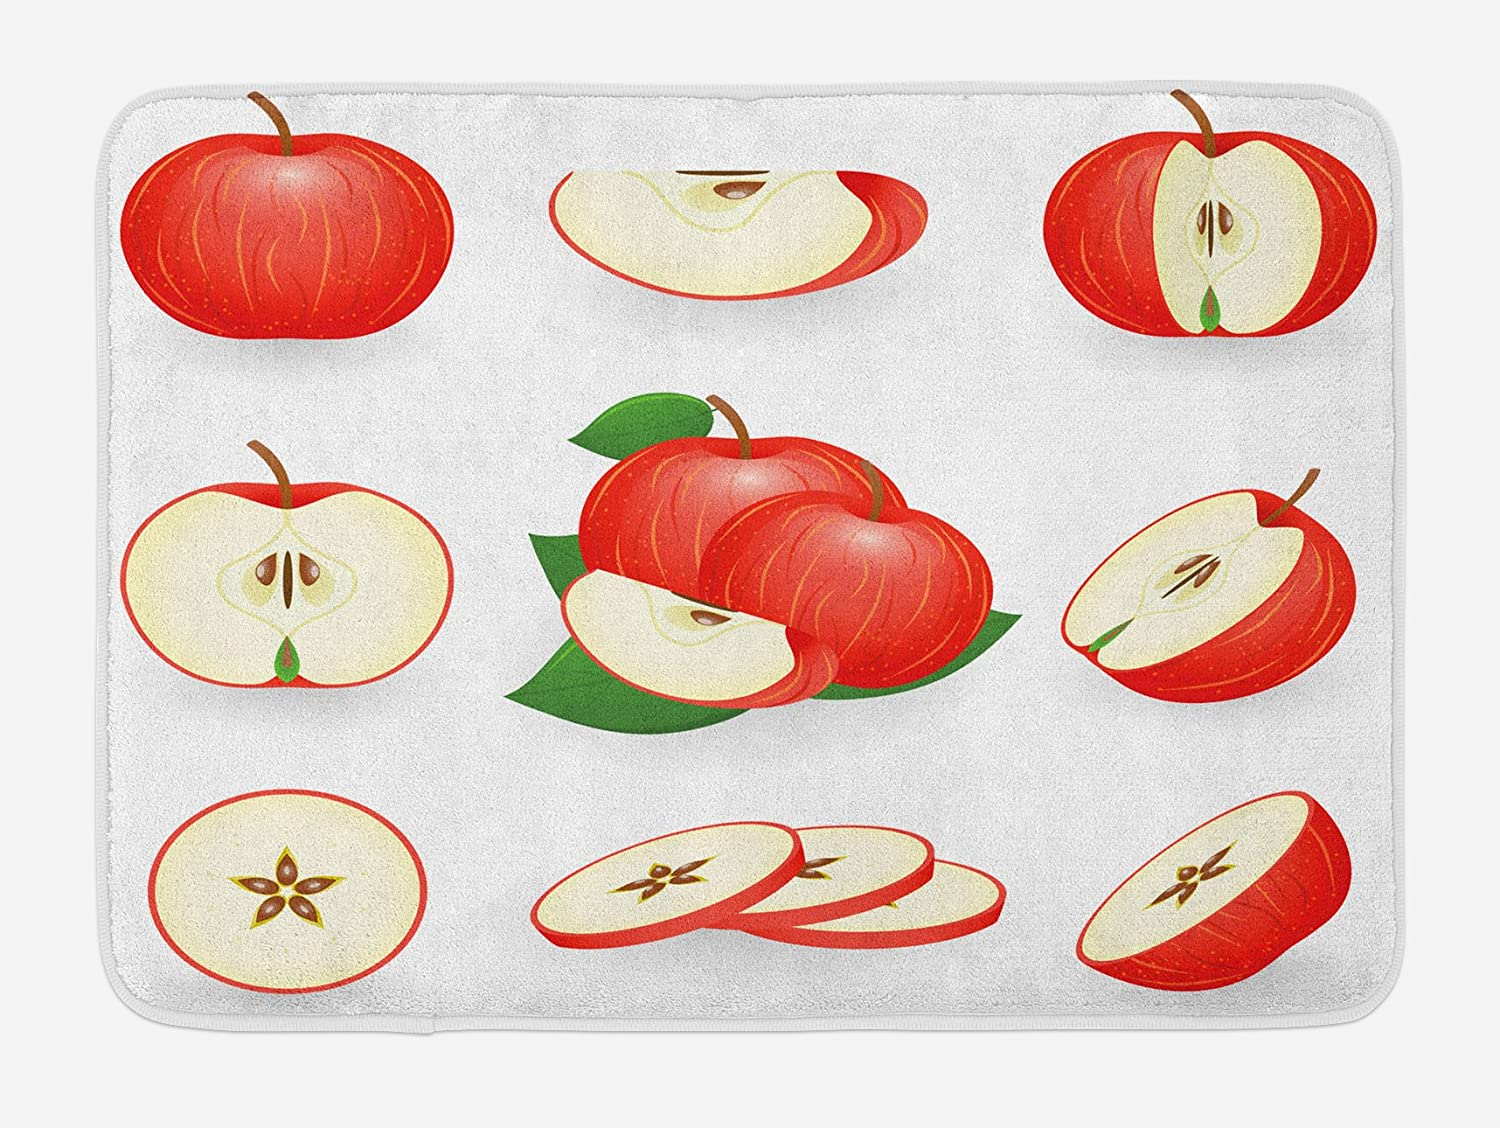 """Ambesonne Sweets Bath Mat, Yummy Chopped Apple Slices Juicy Fresh Fruits Delicious Nature Illustration Print, Plush Bathroom Decor Mat with Non Slip Backing, 29.5"""" X 17.5"""", Scarlet Cream"""